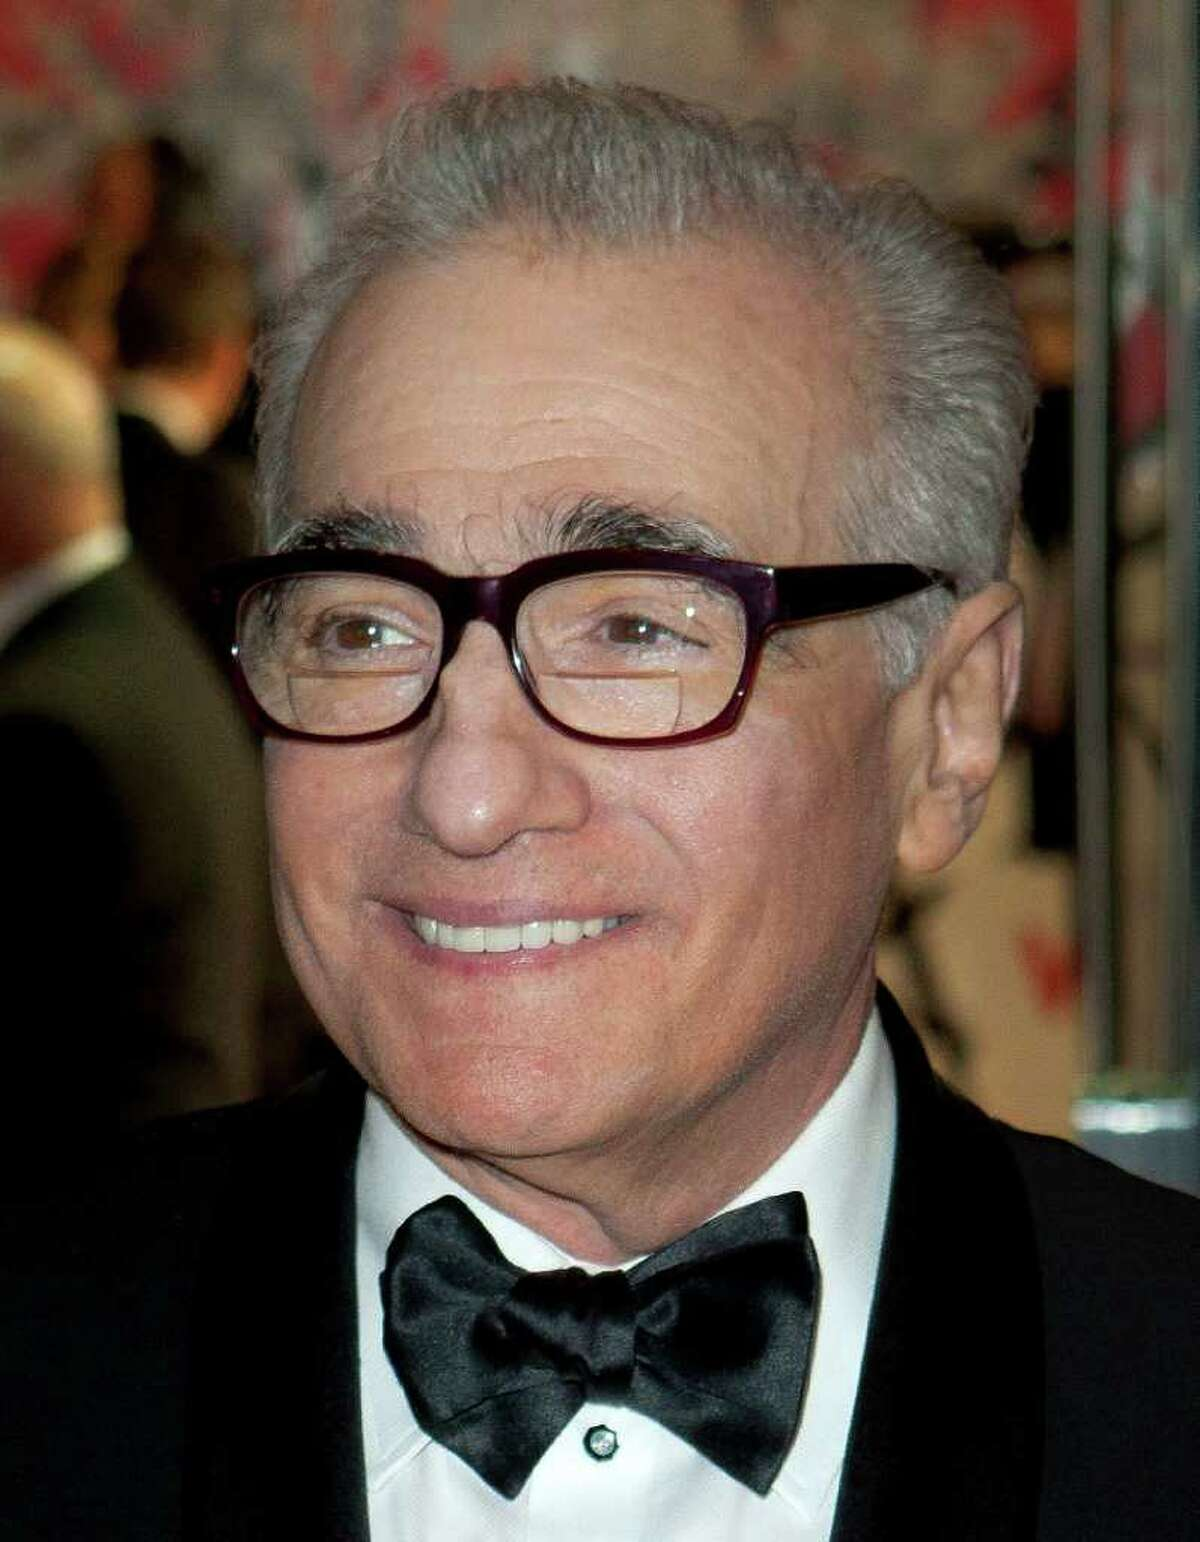 """FILE - In this Nov. 28, 2011 file photo, director Martin Scorsese arrives for the Royal Film Performance of """"Hugo,"""" in London. Scorsese was nominated Tuesday, Jan. 24, 2012 for an Academy Award for best director for the film. The Oscars will be presented Feb. 26 at the Kodak Theatre in Los Angeles, hosted by Billy Crystal and broadcast live on ABC. (AP Photo/Joel Ryan, file)"""